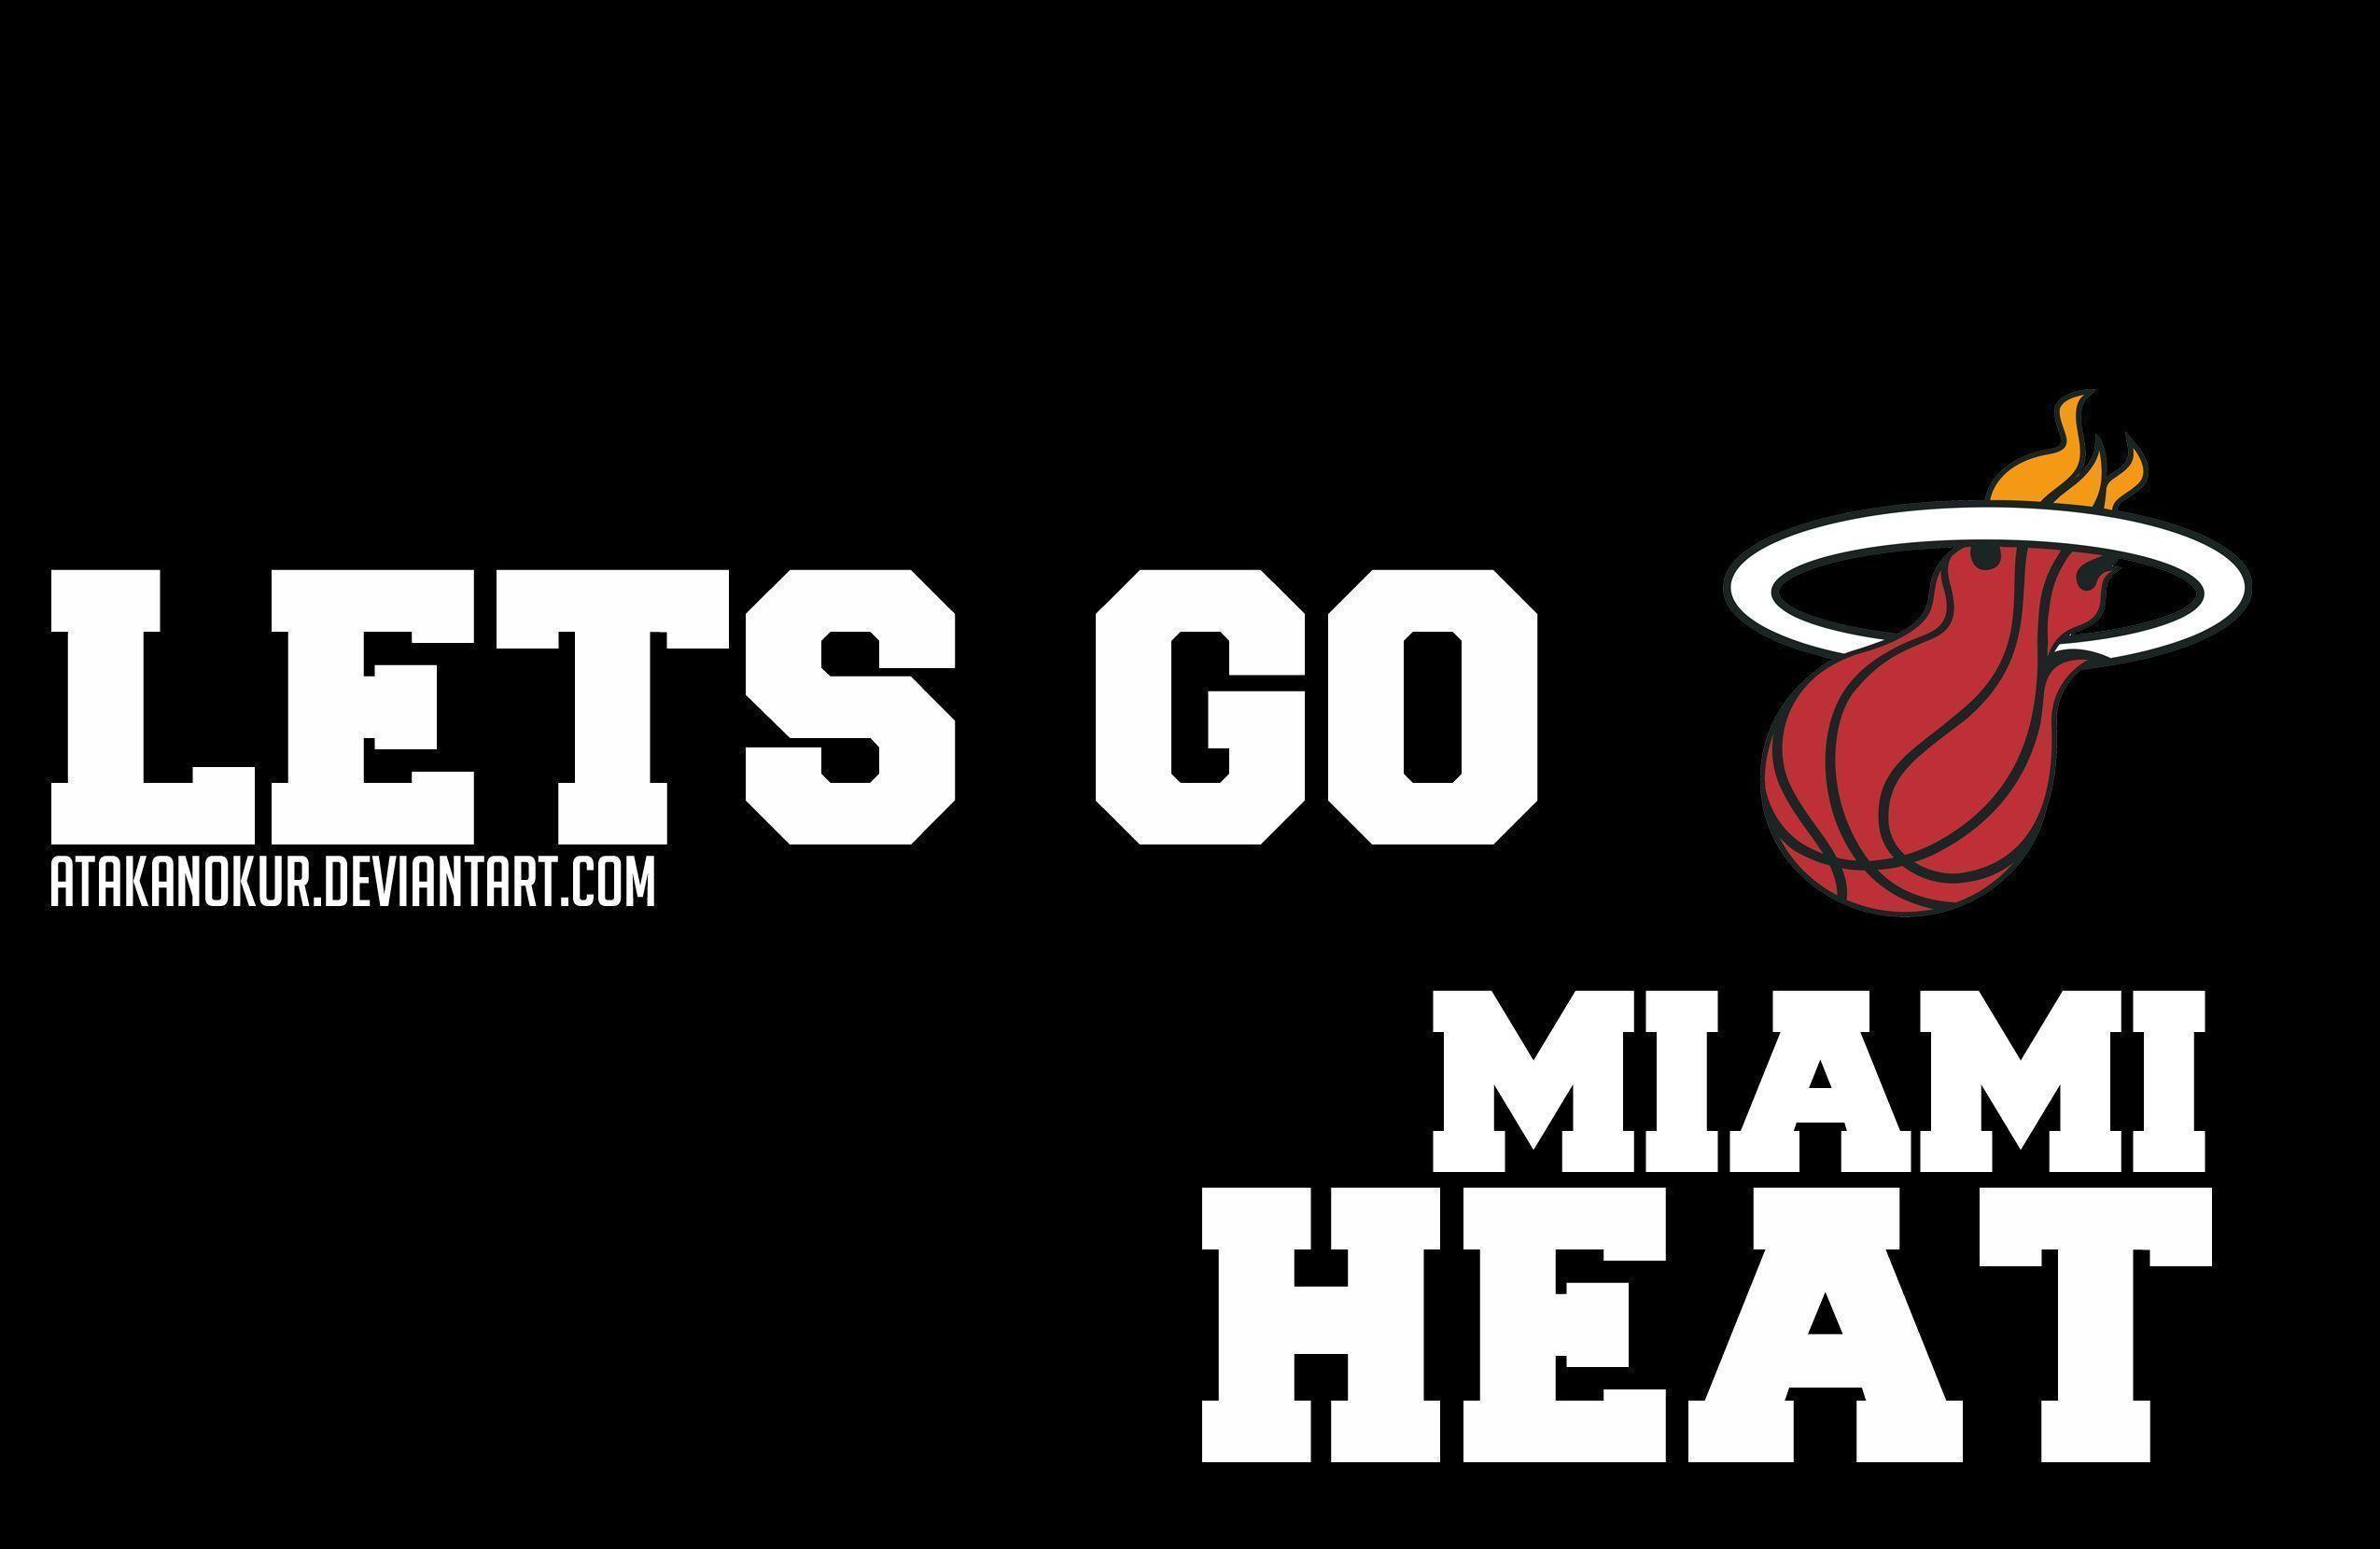 Sports Miami Heat Wallpapers 2550x1660 px Free Download